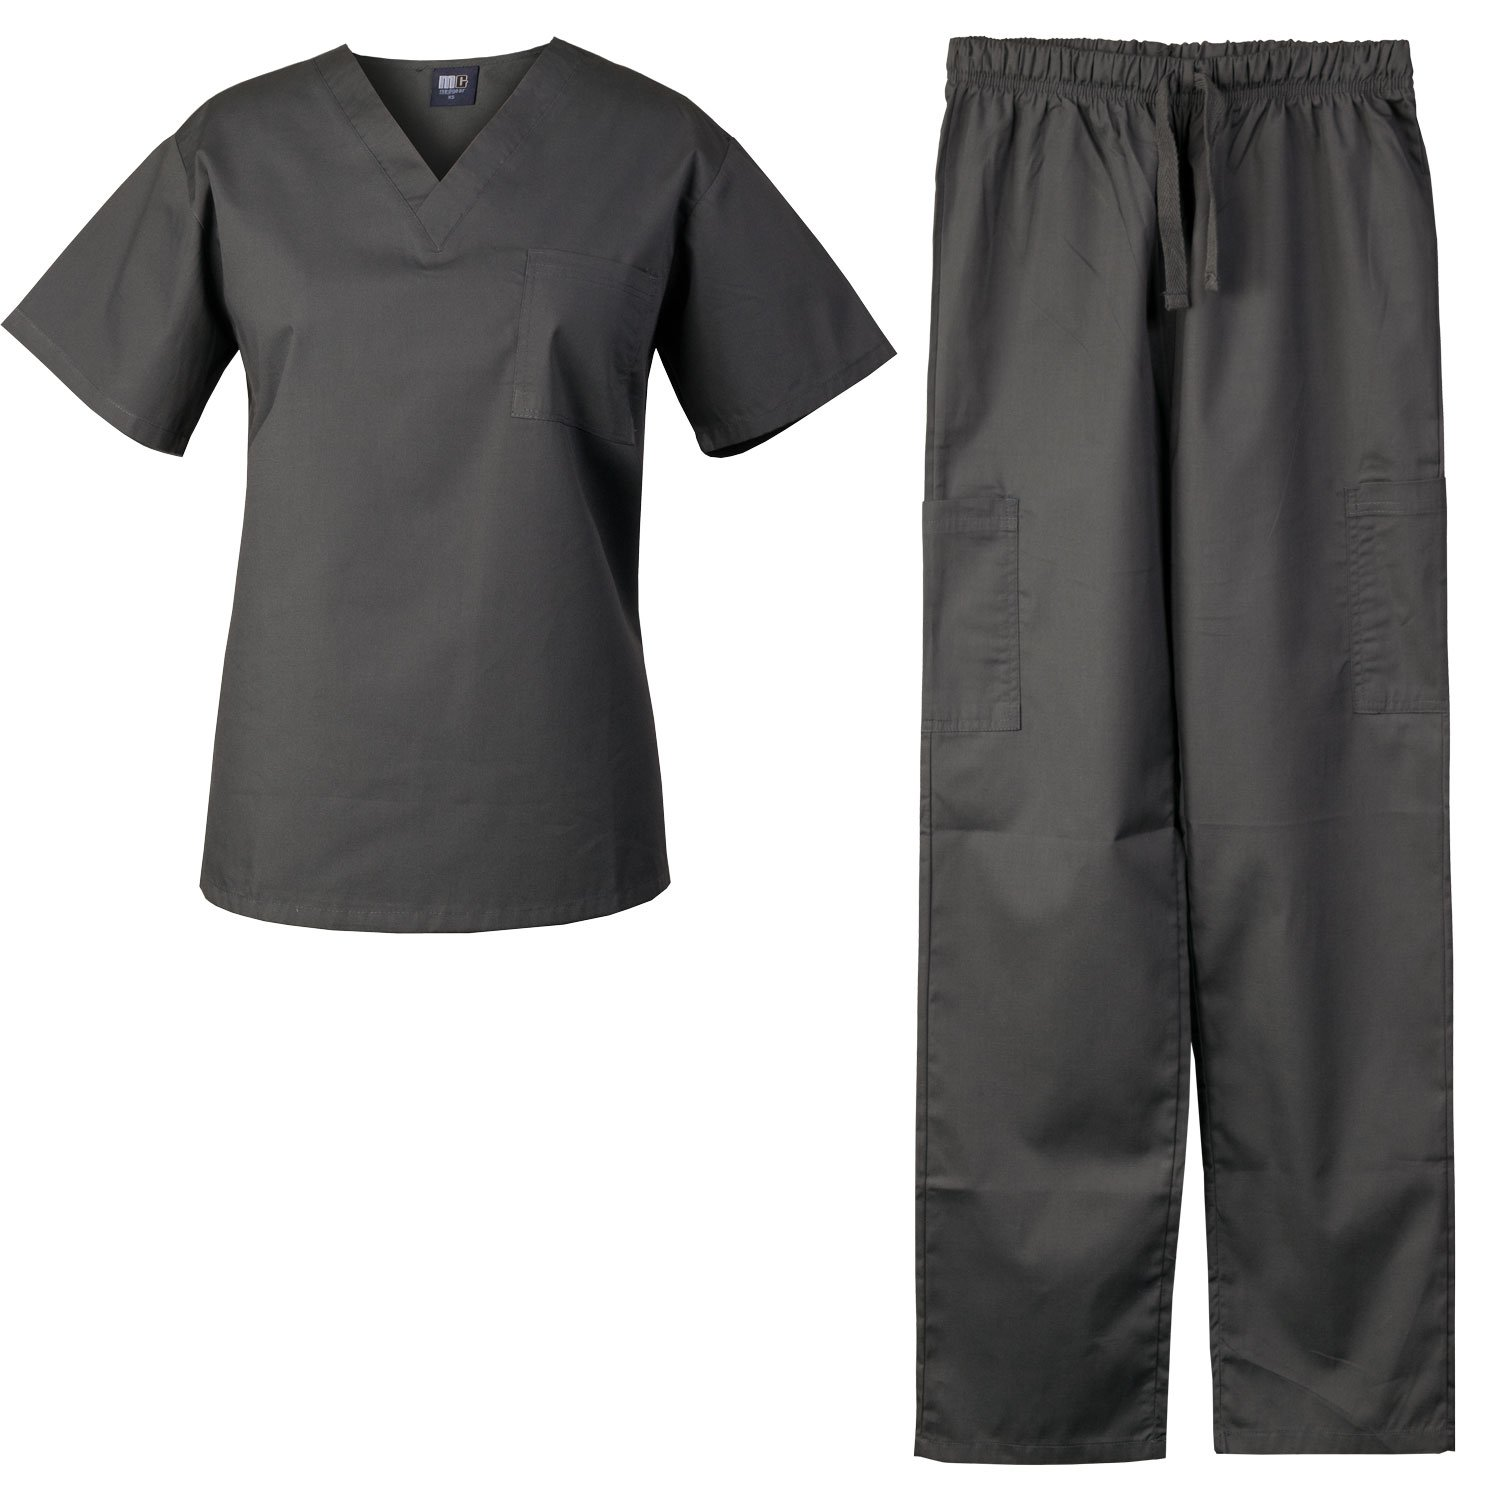 MedGear Scrubs Set Unisex Top and Pants, Medical Uniform, Multiple Colors 7881NW (M, Charcoal)